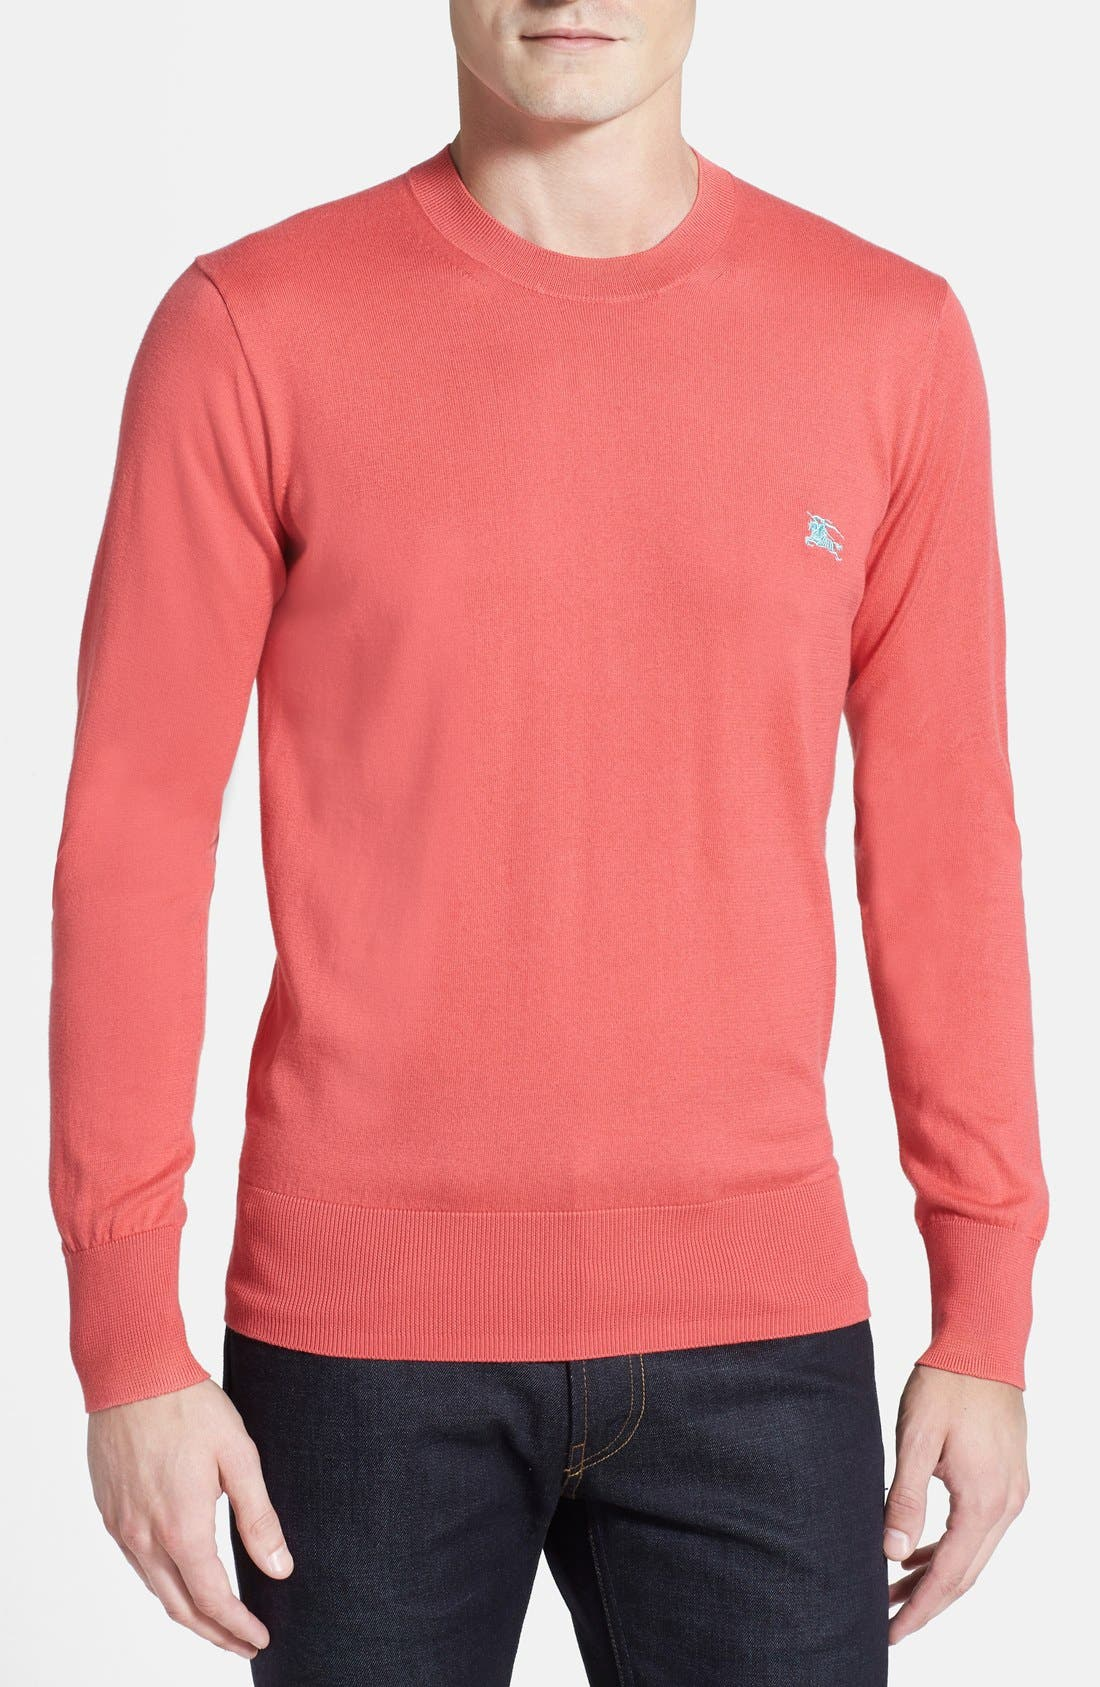 Alternate Image 1 Selected - Burberry 'Arnal' Crewneck Sweater